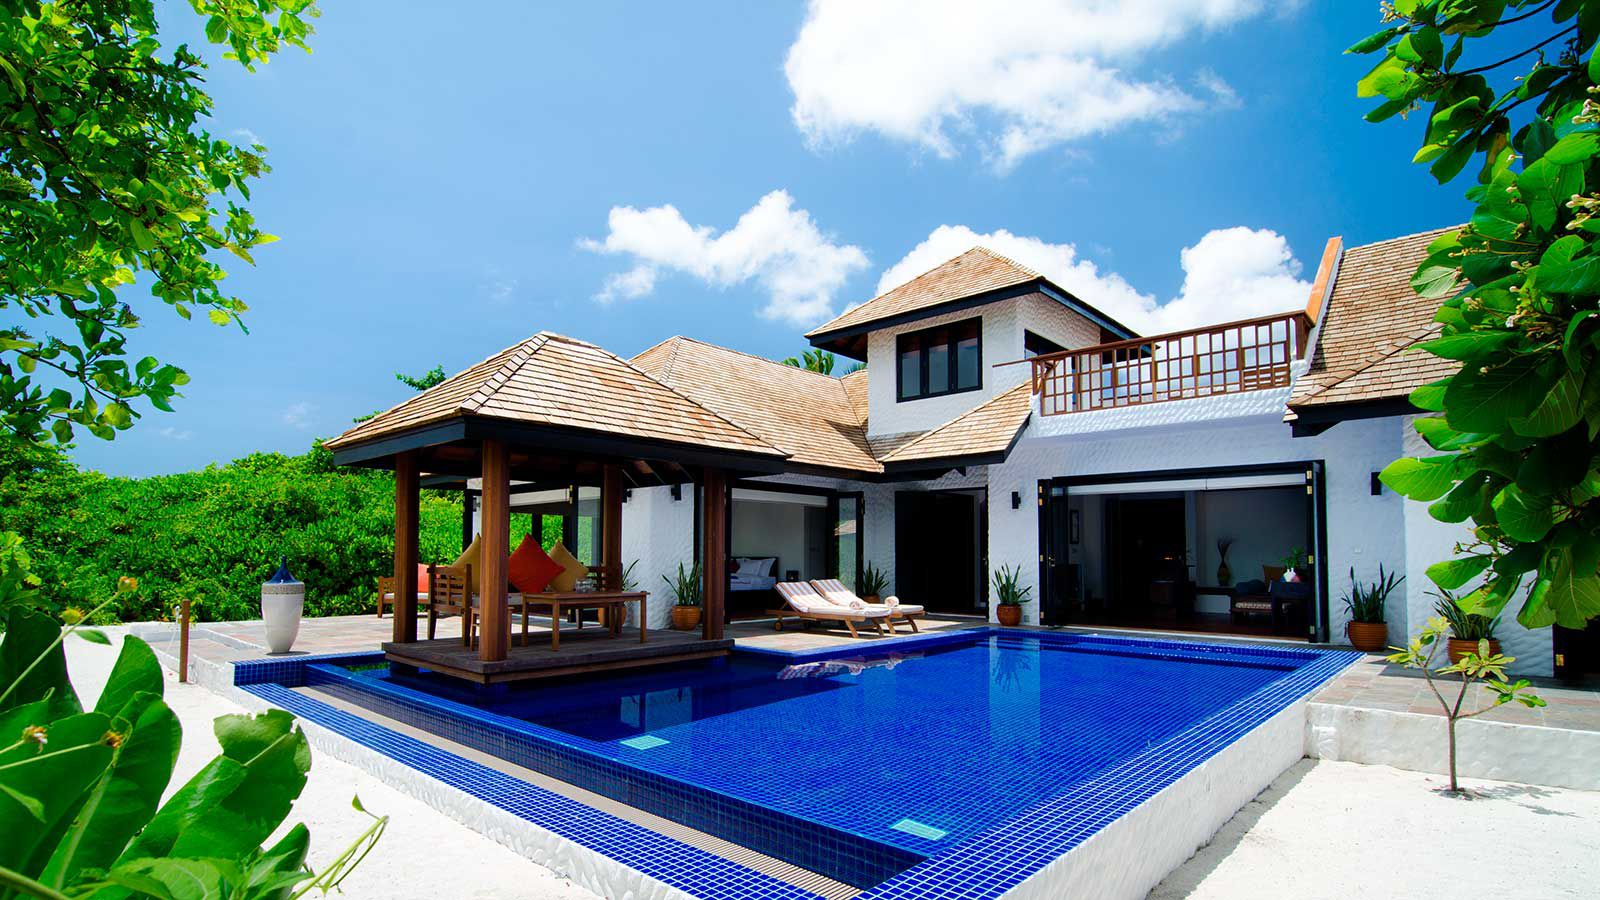 Maldives Family Pool Villas - Luxury Family Villas Maldives - Hideaway Beach Resort